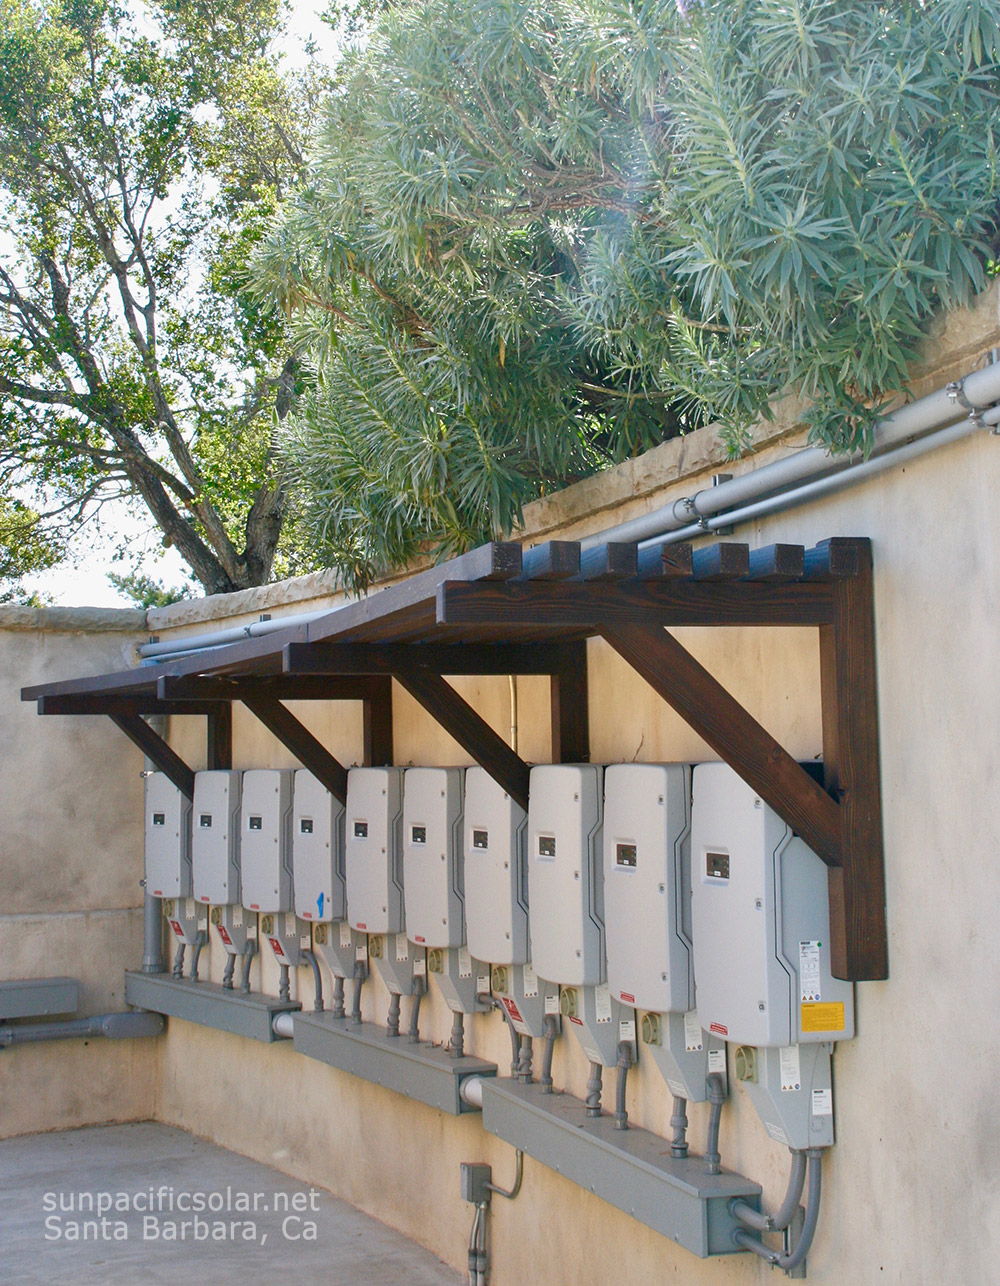 Some of the SMA SunyBoy solar inverters for a 101.43kW system in Summerland, California.